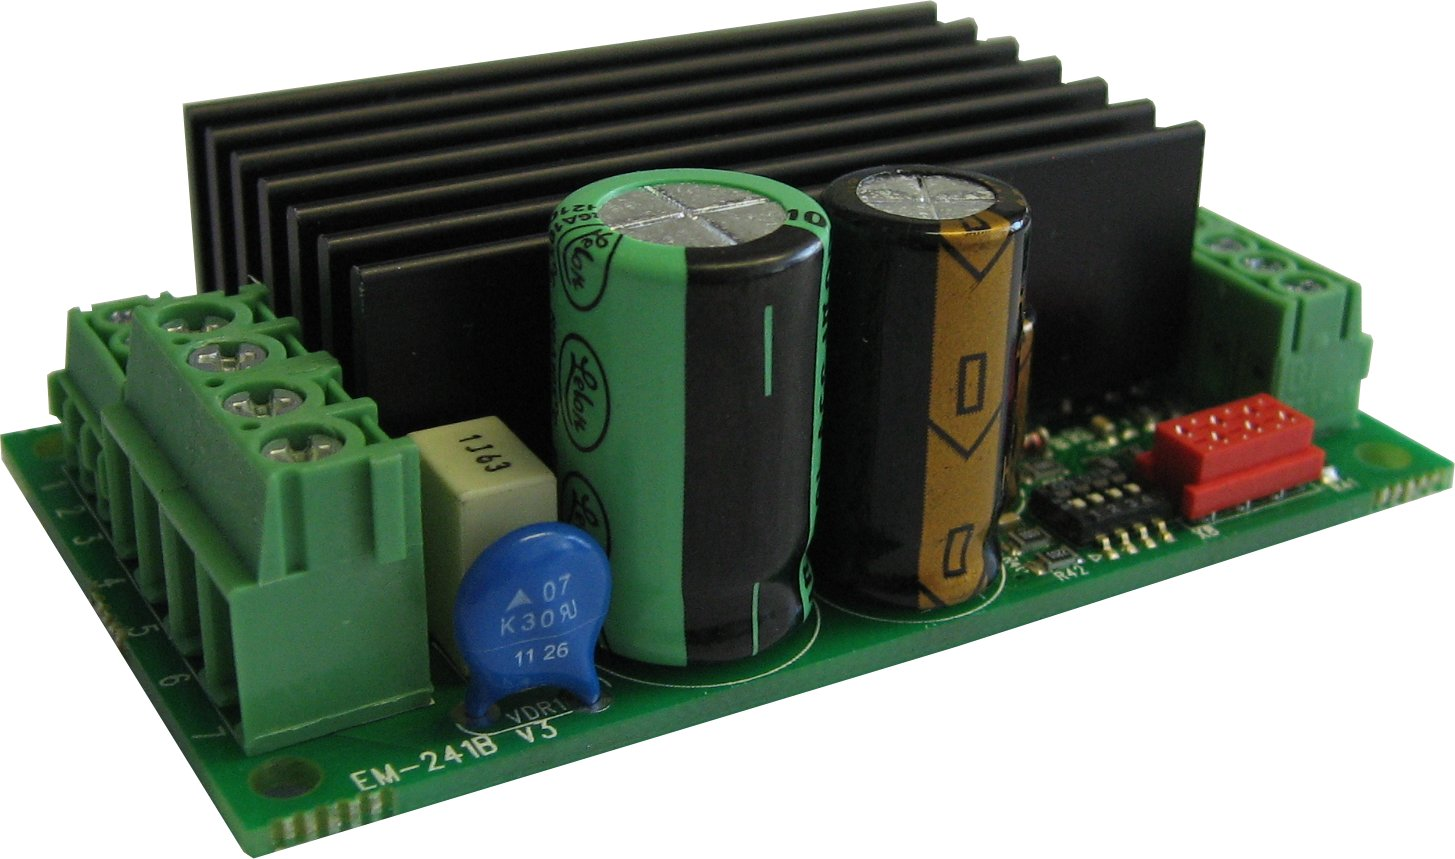 Electromen Em 241c 48v Dc Motor Controller 24 10a Small Speed Regulator Is A Full Bridge Starter For Nominal Voltage 36 Or It Designed To Work With In Applications Where Some Special